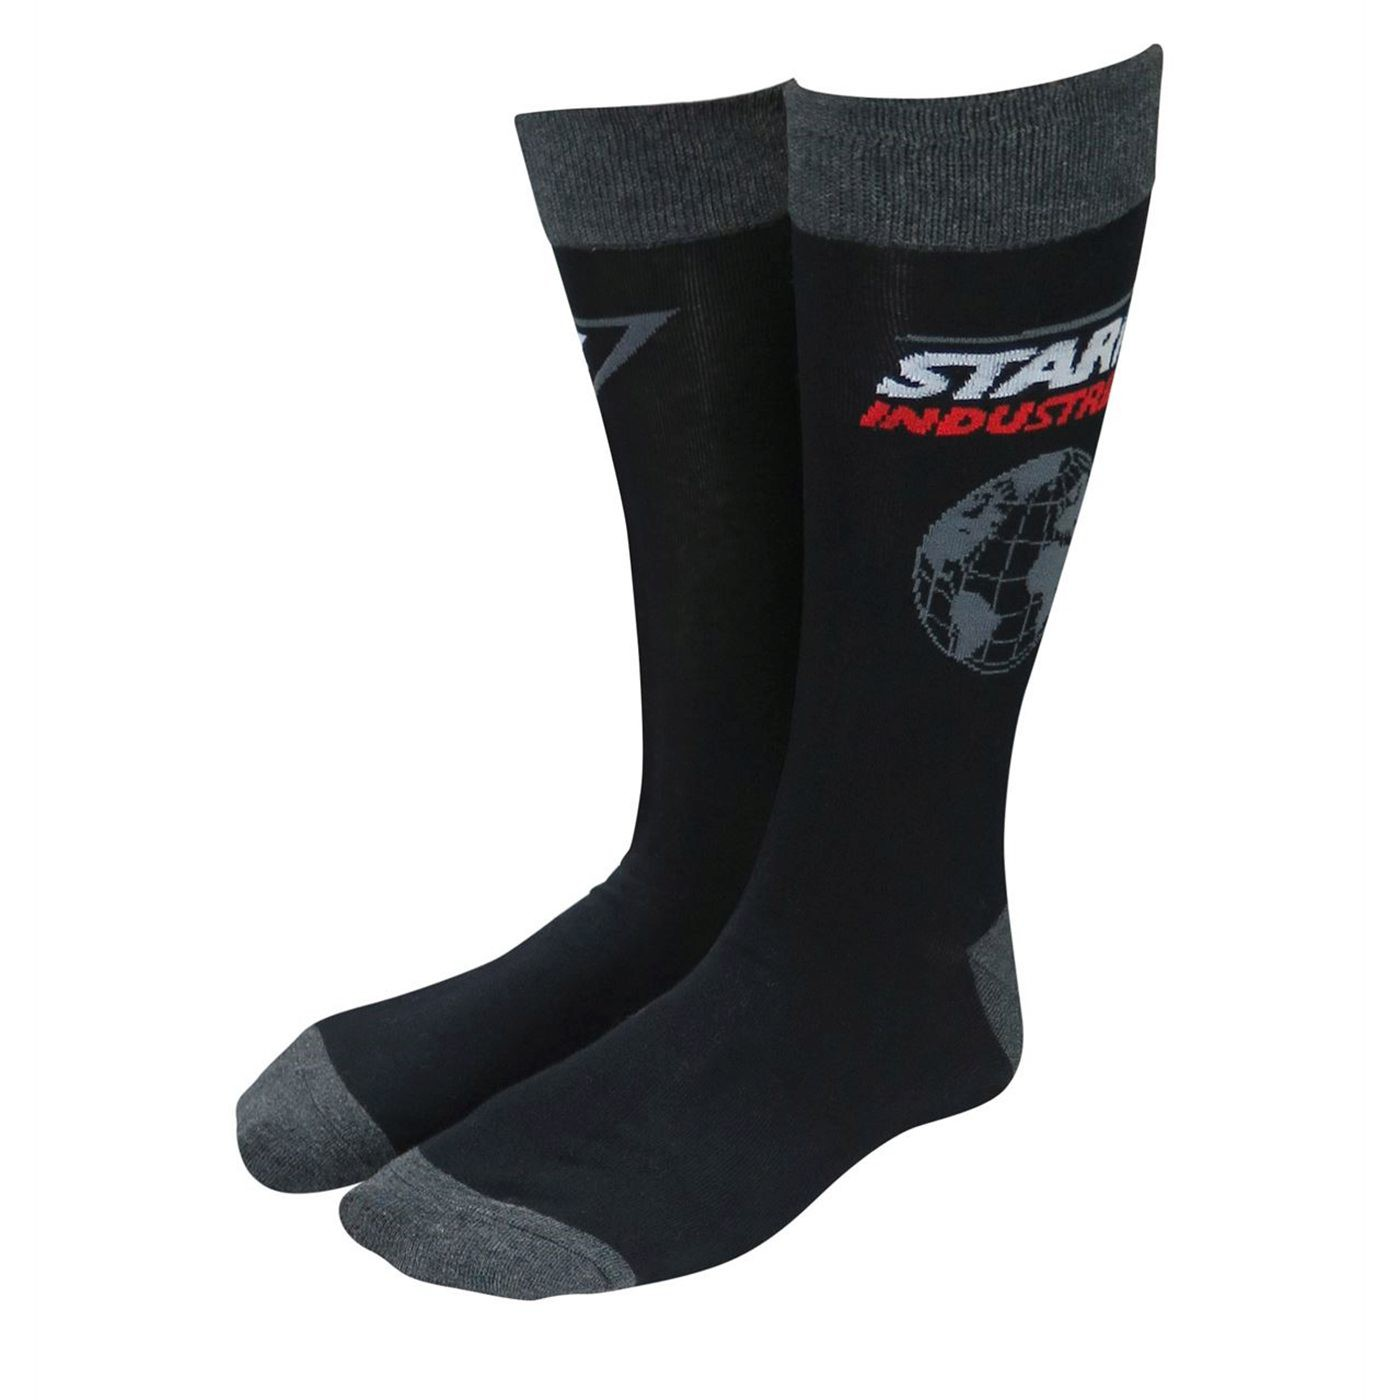 Iron Man Stark Industries Crew Socks